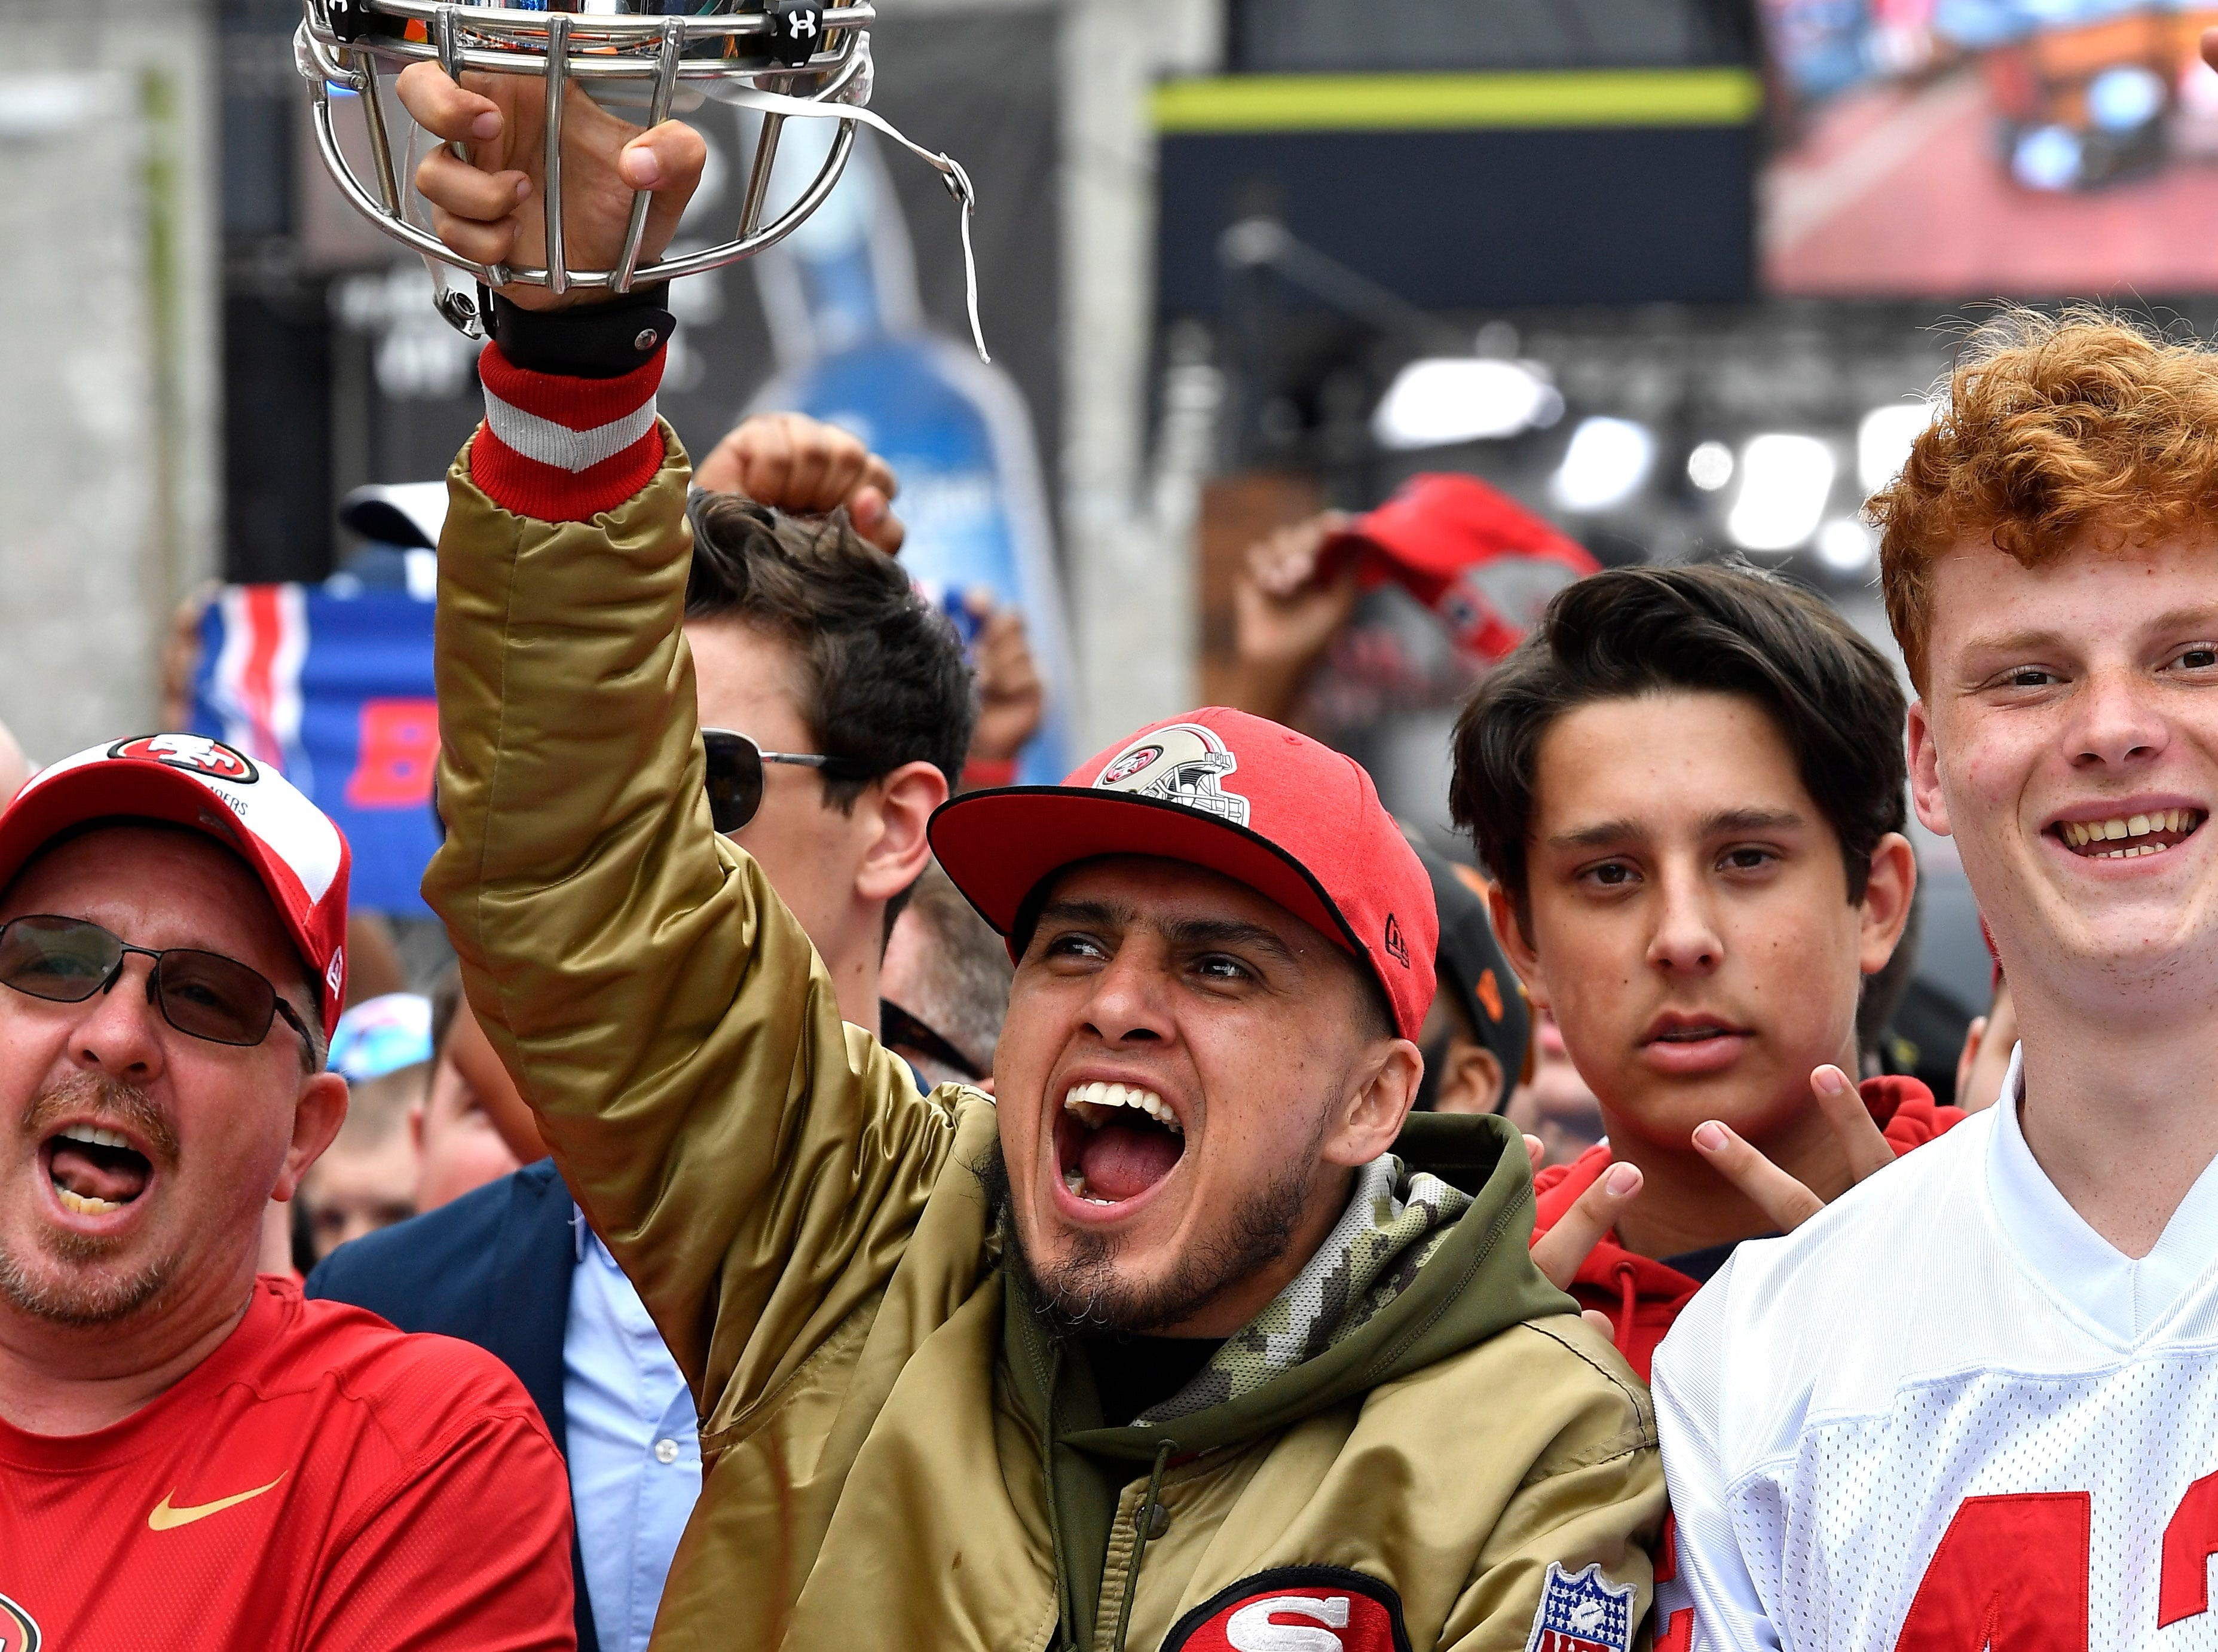 Niners fan Christian Caballero of Mexico City cheers before the start of the first round of the NFL Draft  Thursday, April 25, 2019 in Nashville, Tenn.